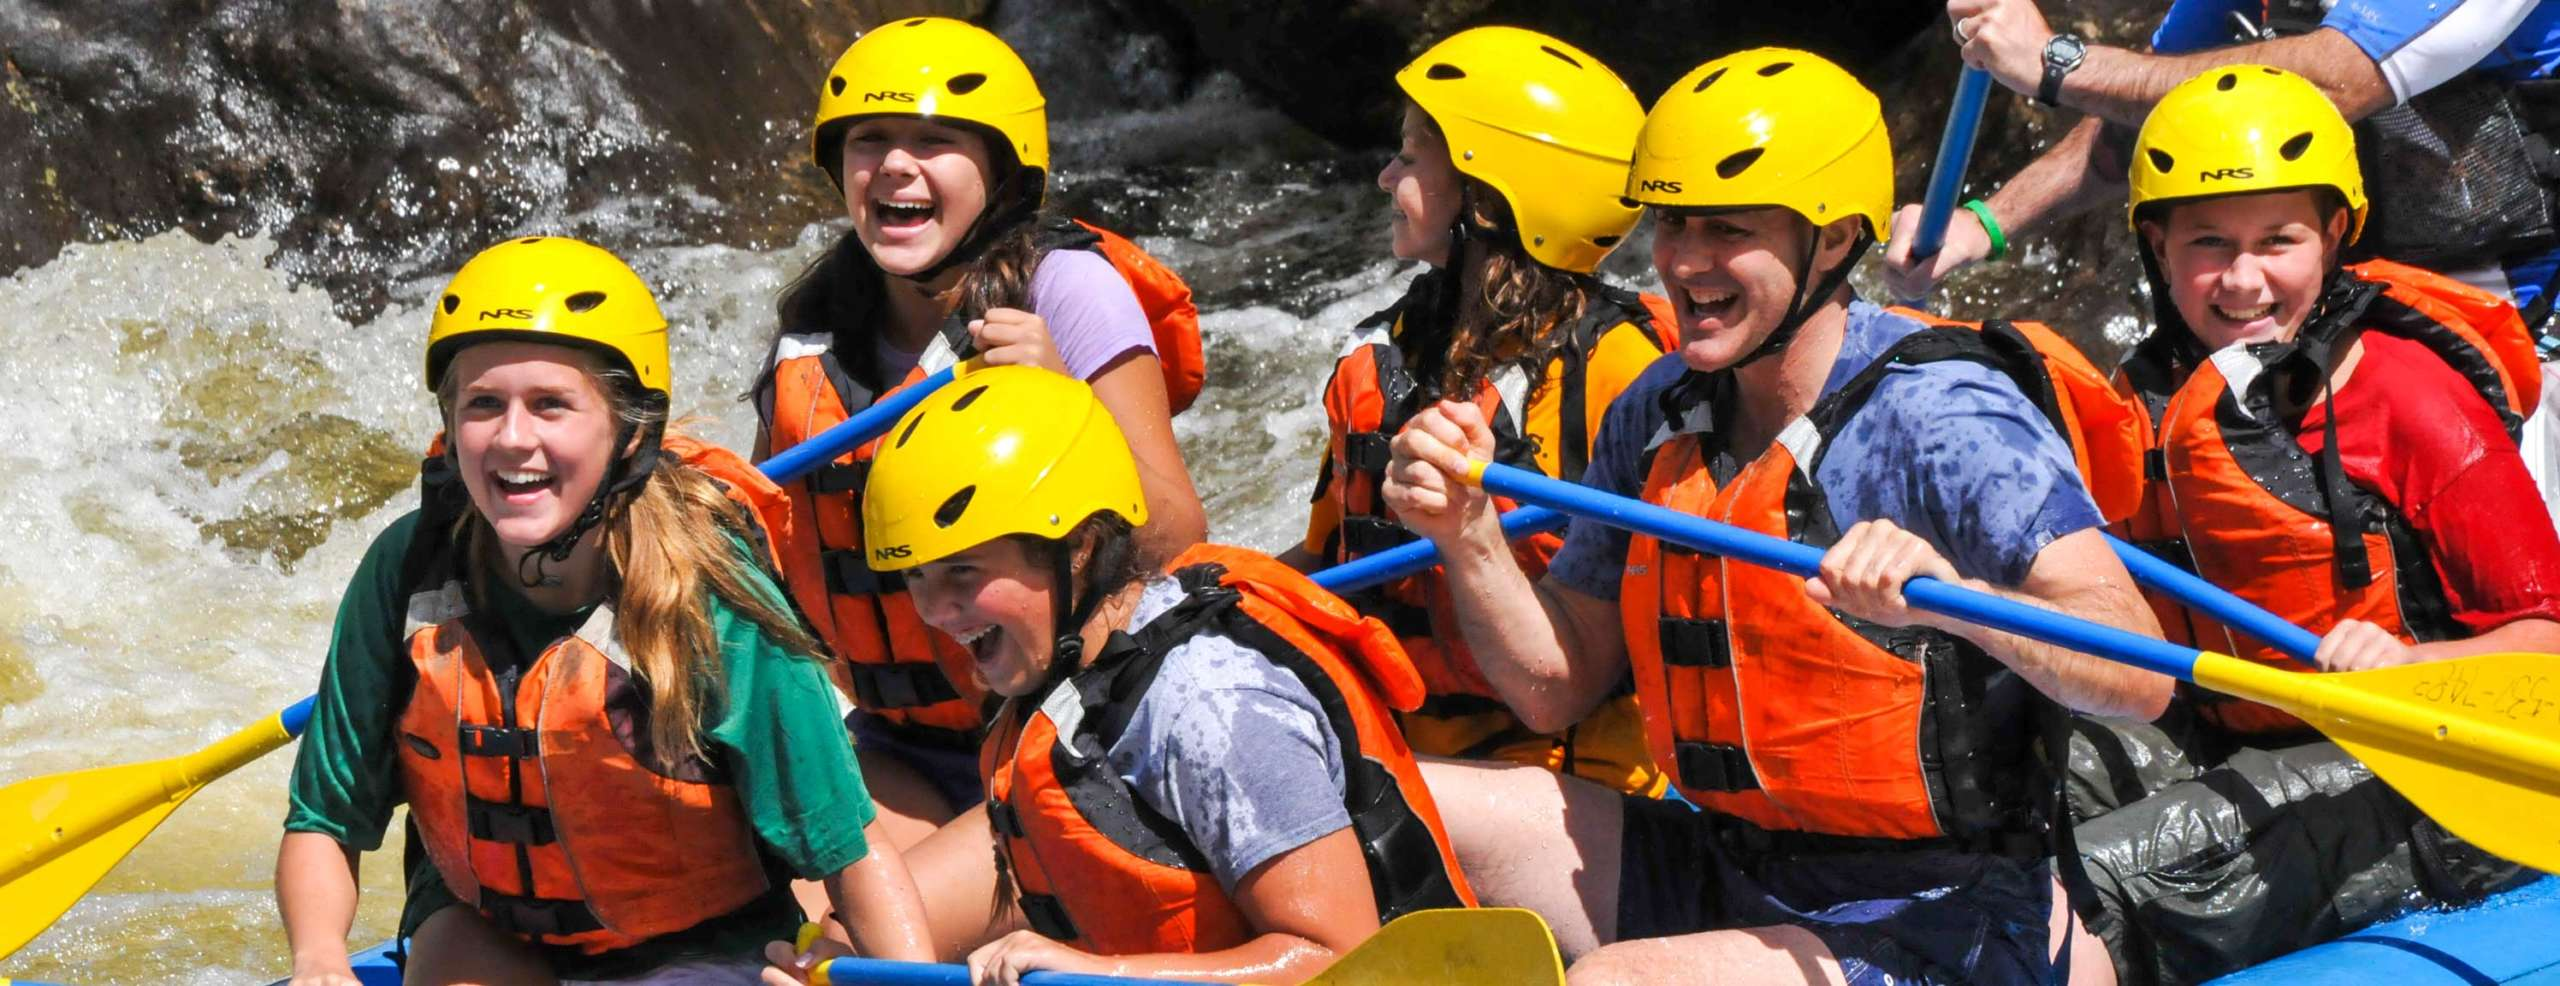 Group of young people rafting down a river